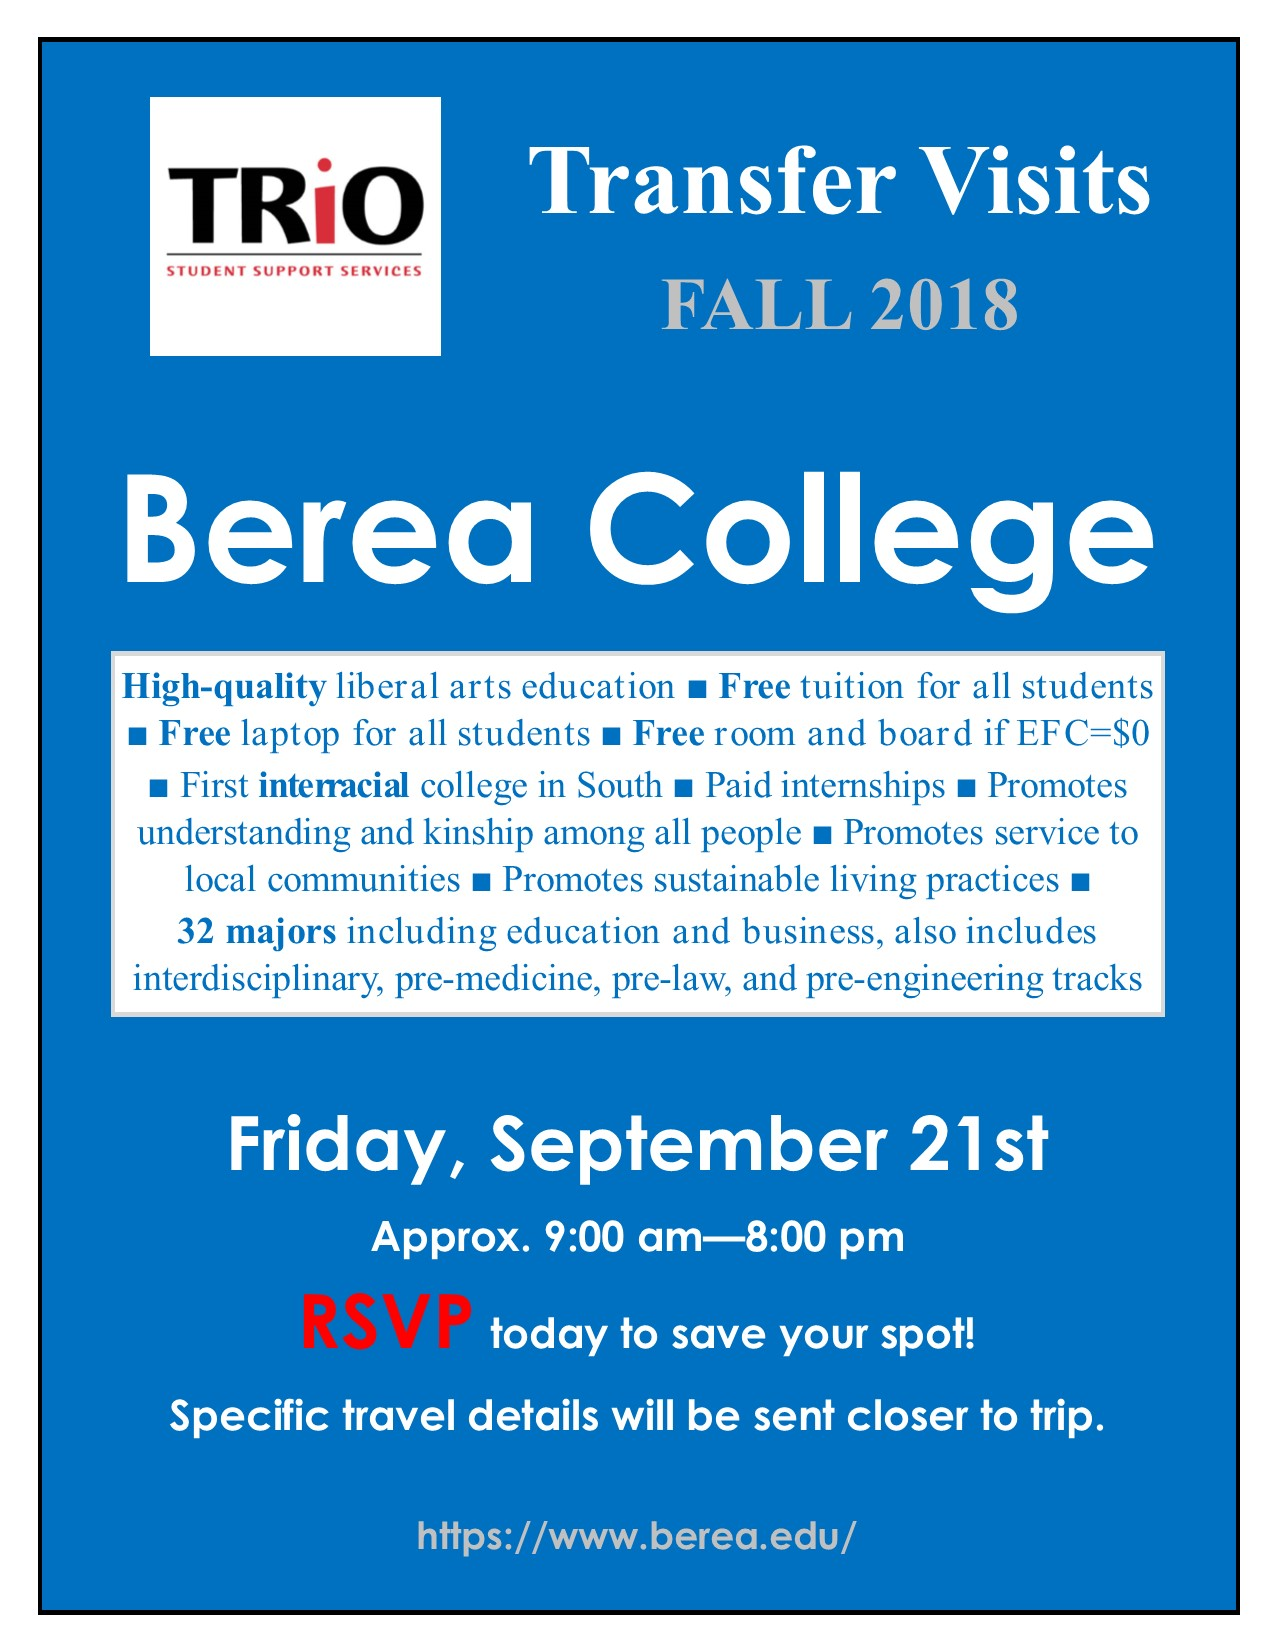 Fall 2018 Berea College Transfer Visit flyer.